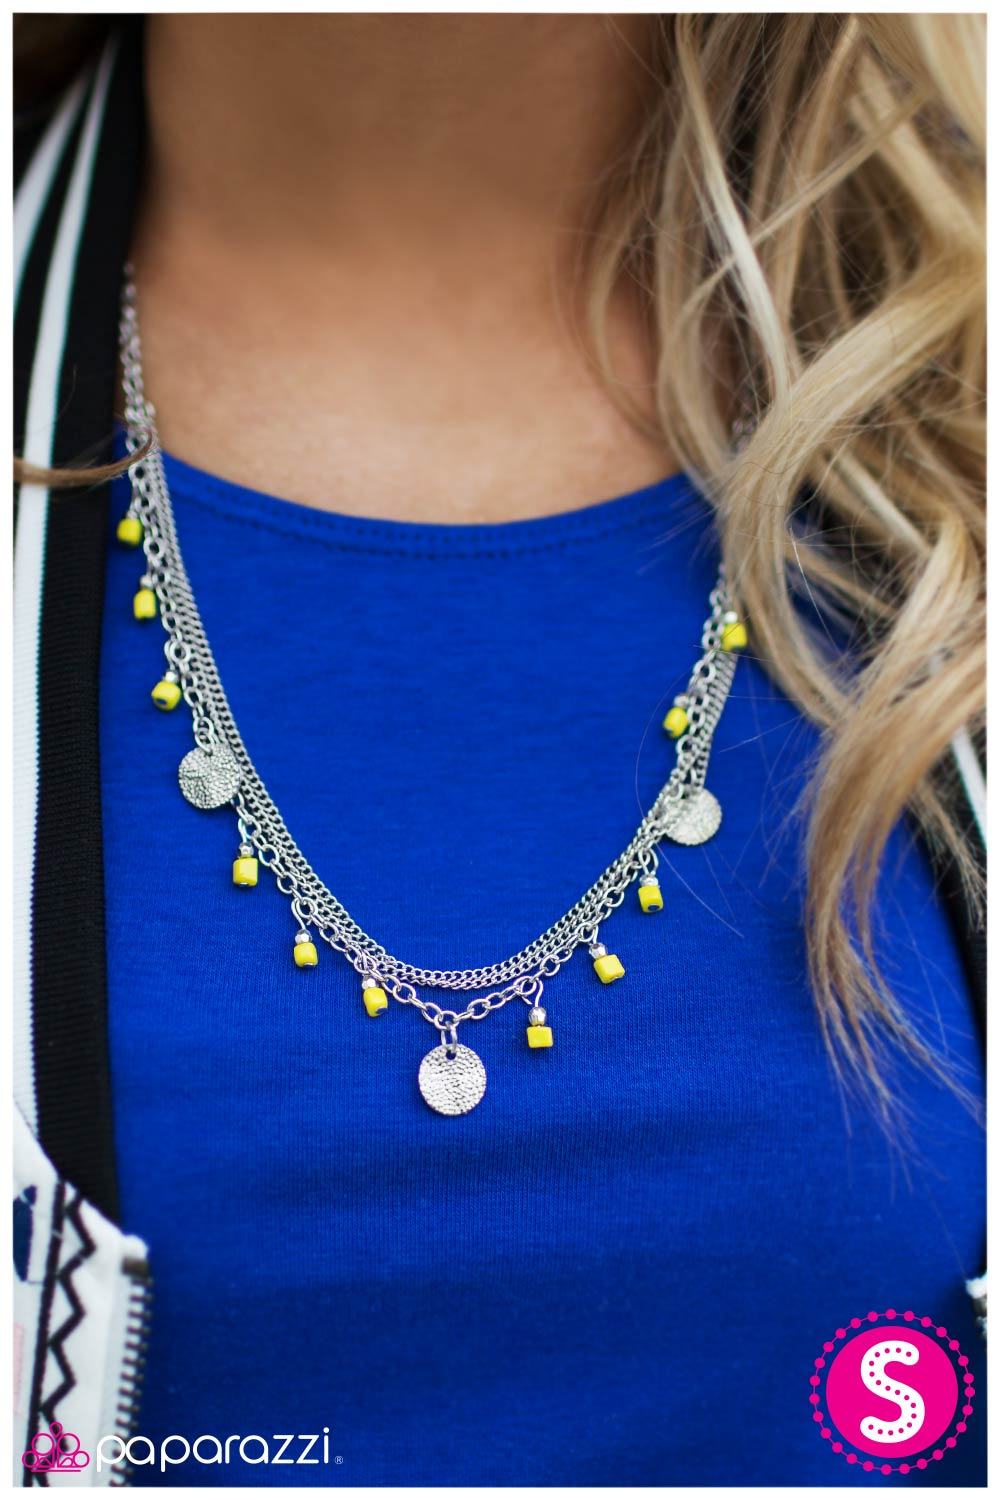 Marina Bay Yellow Paparazzi 5 Jewelry Join Or Shop Online